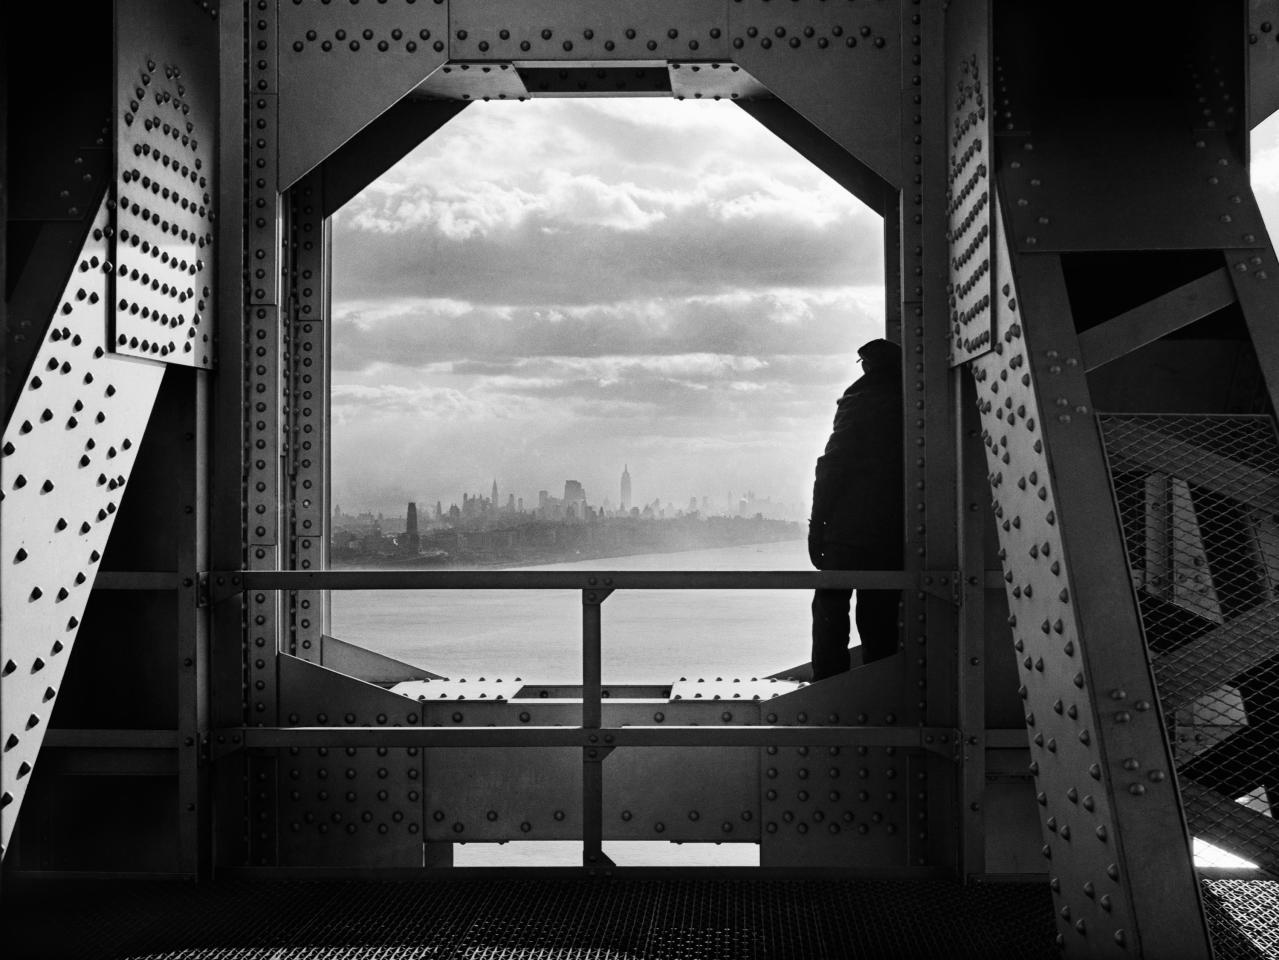 In this Dec. 22, 1936, Works Progress Administration photo provided by the New York City Municipal Archives, a man looks at the Hudson River from the New York tower of the George Washington Bridge. Over 870,000 photos from an archive that exceeds 2.2 million images have been scanned and made available online, for the first time giving a global audience a view of a rich collection that documents New York City life.  (AP Photo/New York City Municipal Archives, WPA Federal Writers' Project, Jack Rosenzwieg) MANDATORY